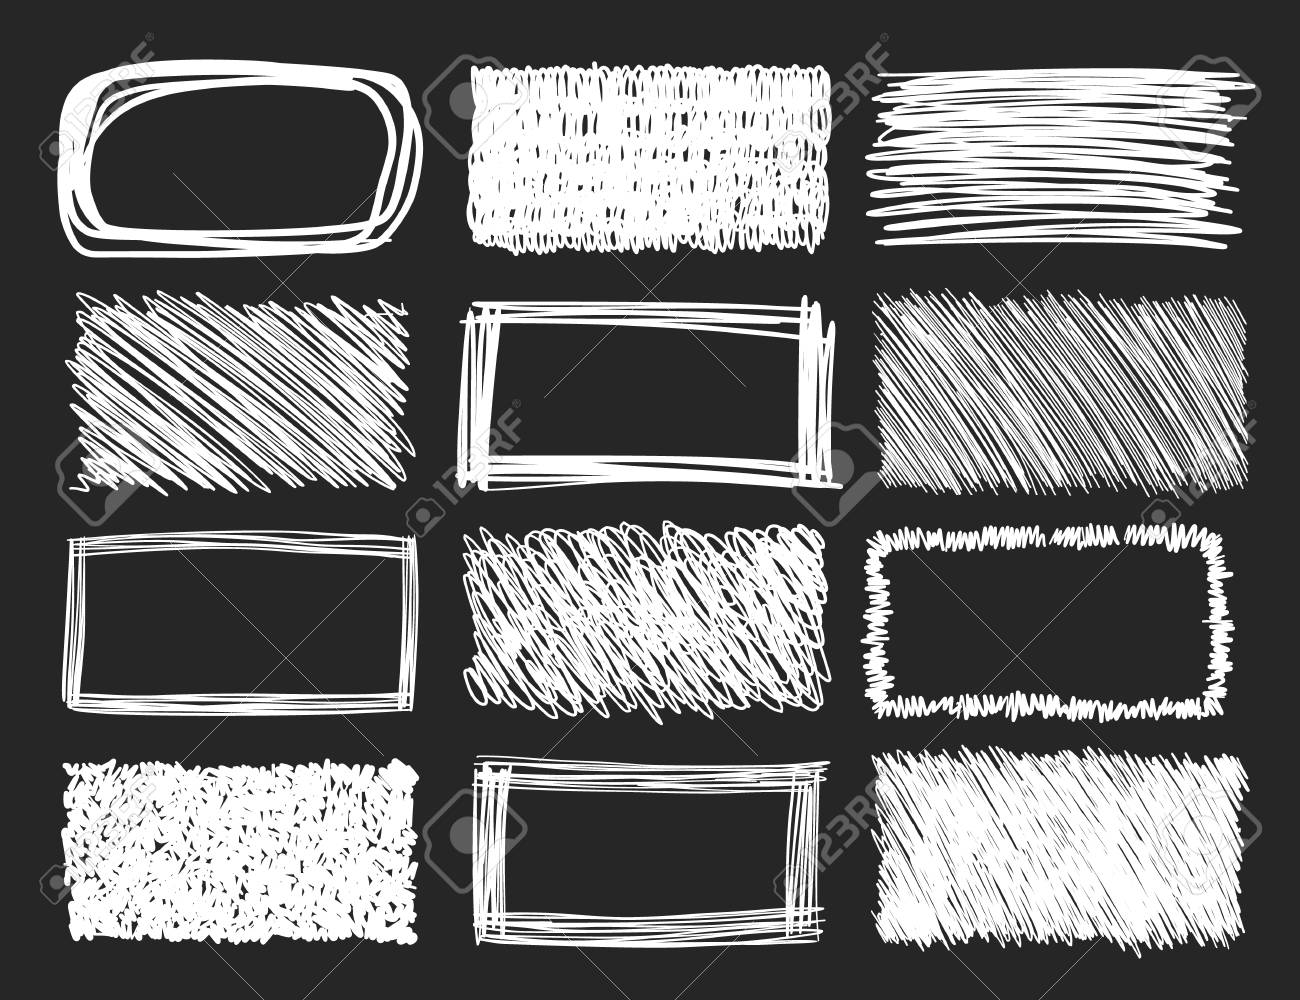 Set of hand drawn scribble frames on a blackboard background, vector design elements collection. - 112351182